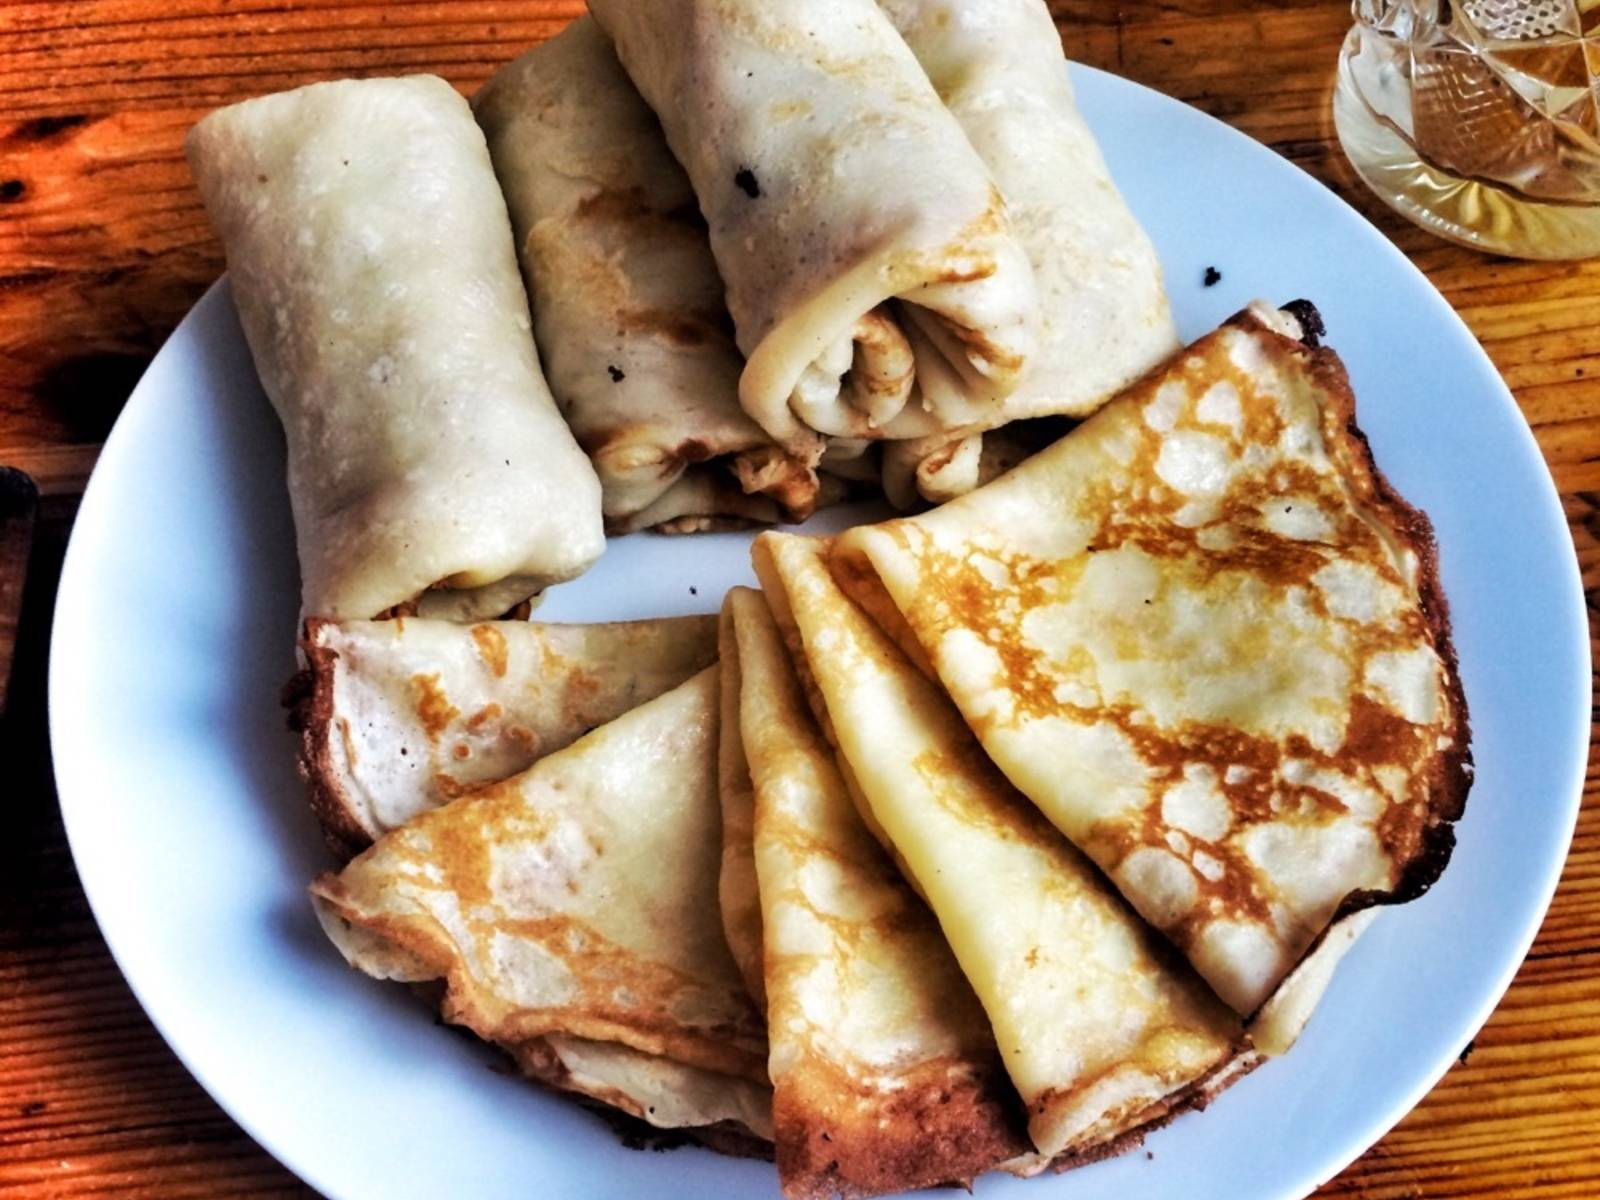 Put some of the filling inside each pancake and serve with jam or sour cream. Yaaaamy!